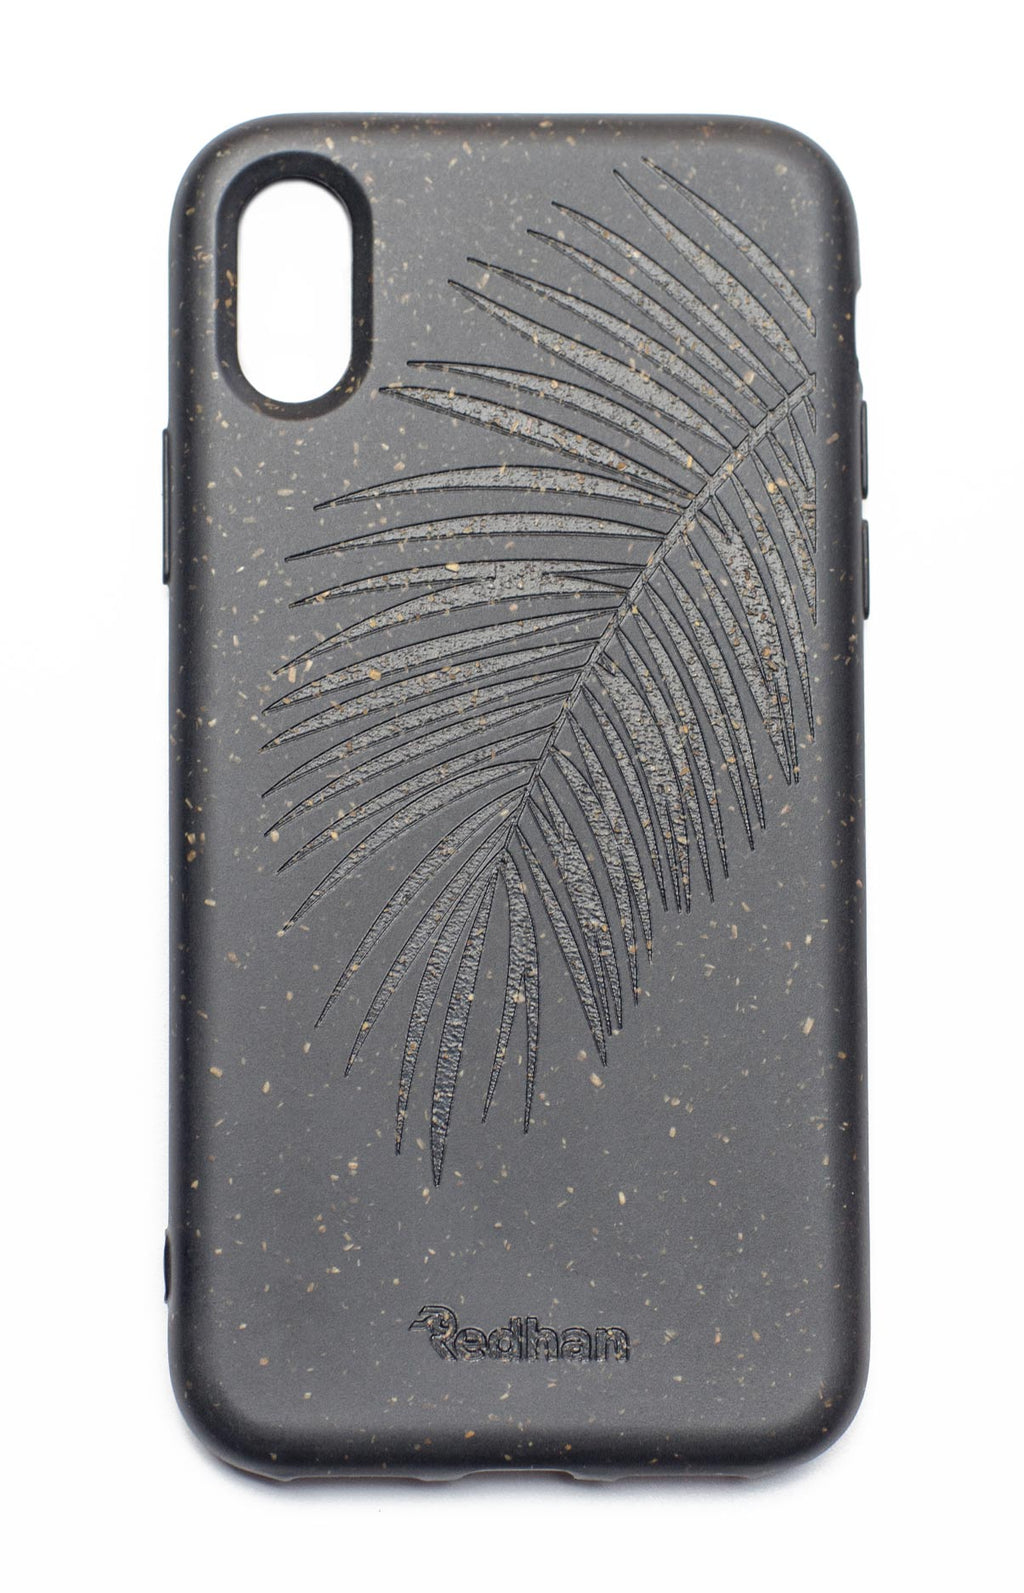 Palm Leaf in Charcoal Black - iPhone XS Max